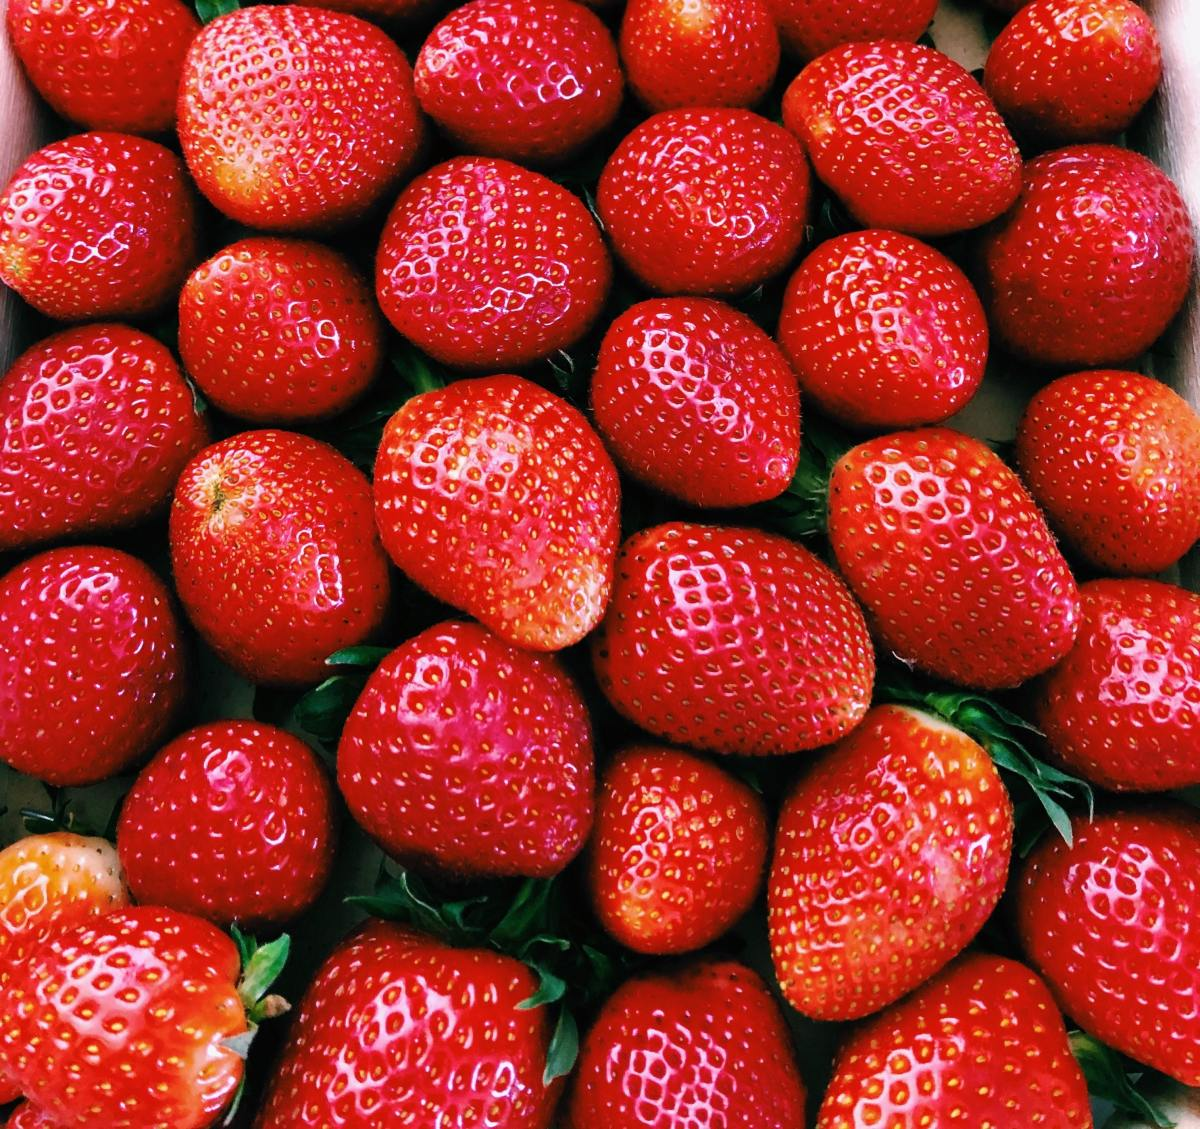 The Humboldt strawberry festival occurs in Tennessee each May, but that's just one of the great state's many annual food festivals.